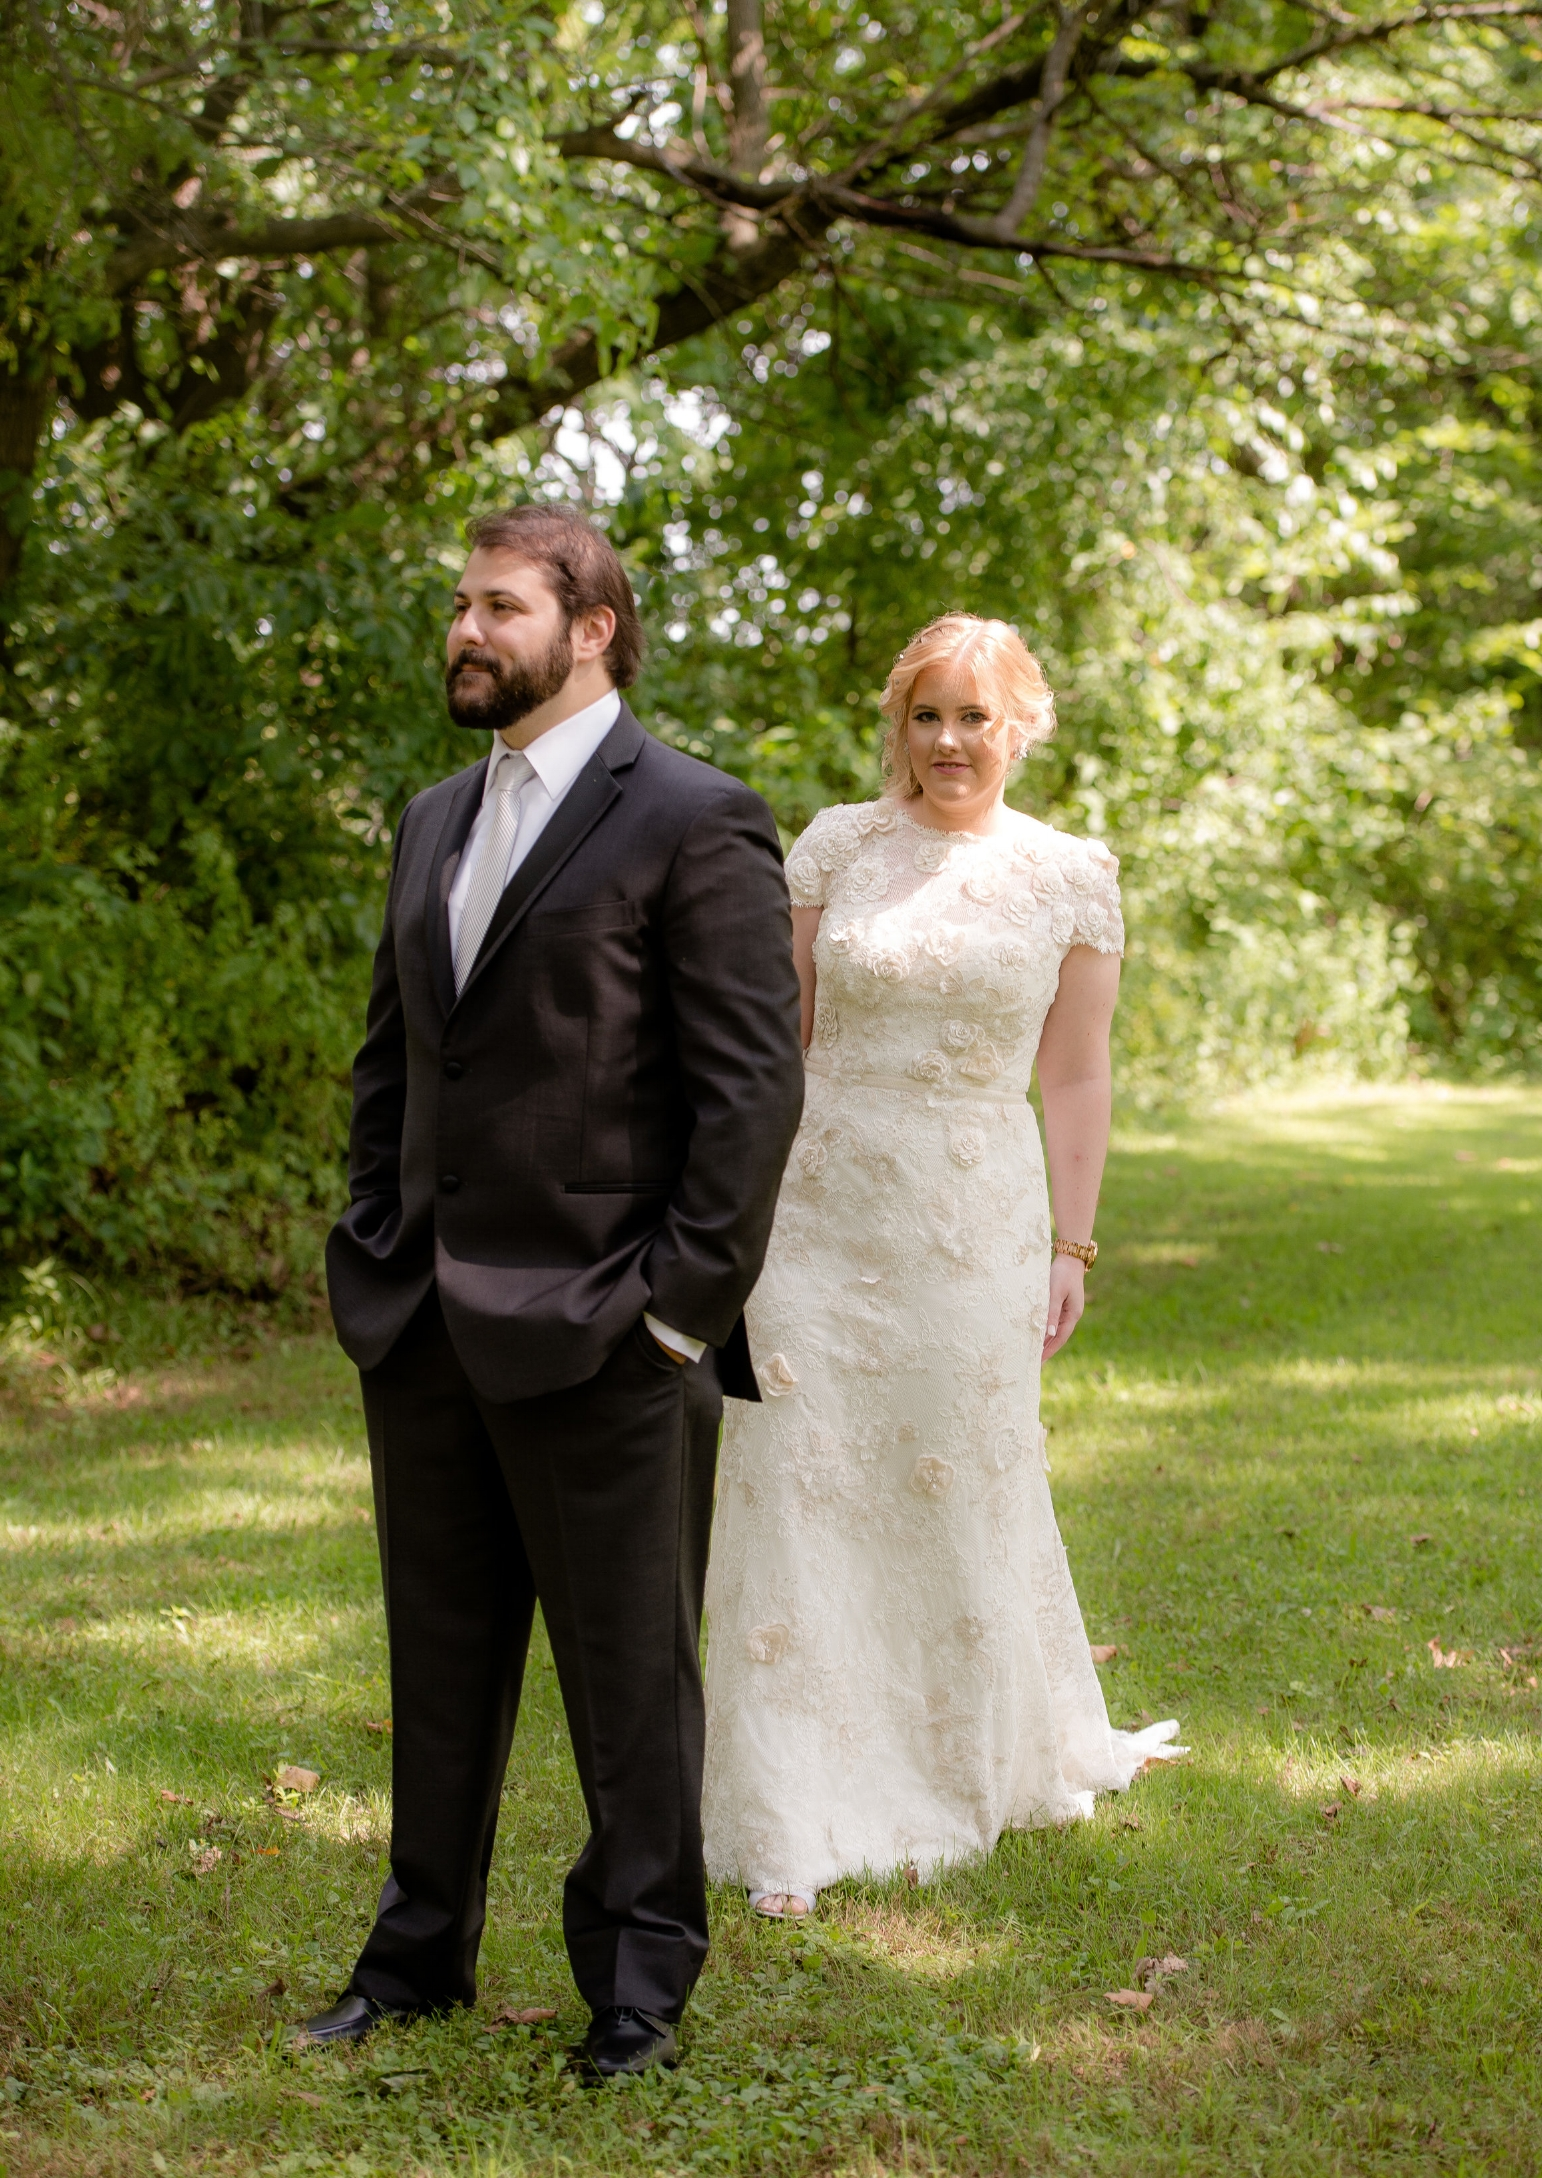 JD Photography, LLC (41 of 404).jpg